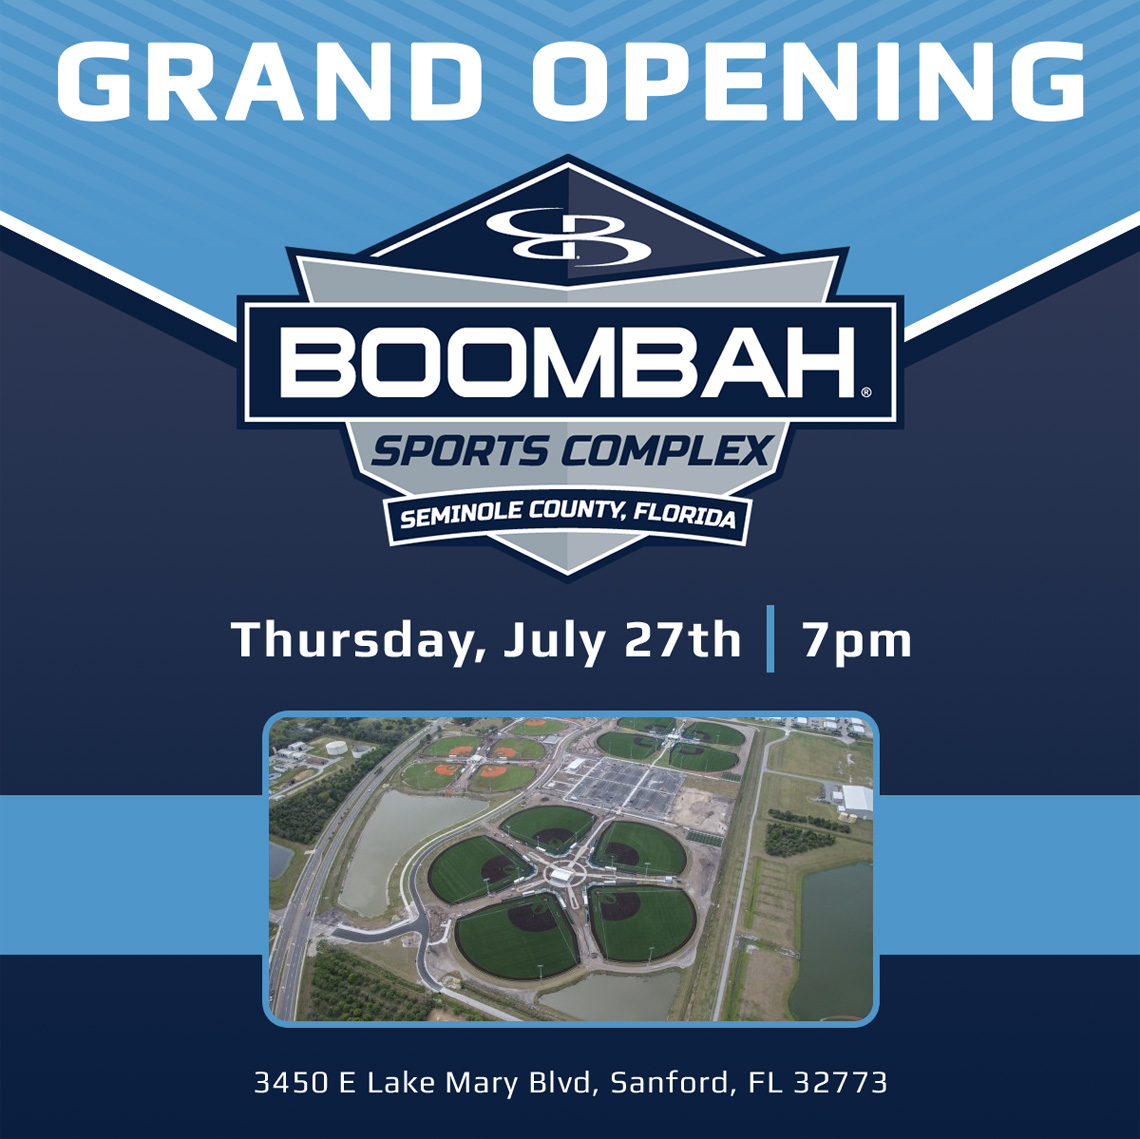 Boombah Sports Complex Grand Opening